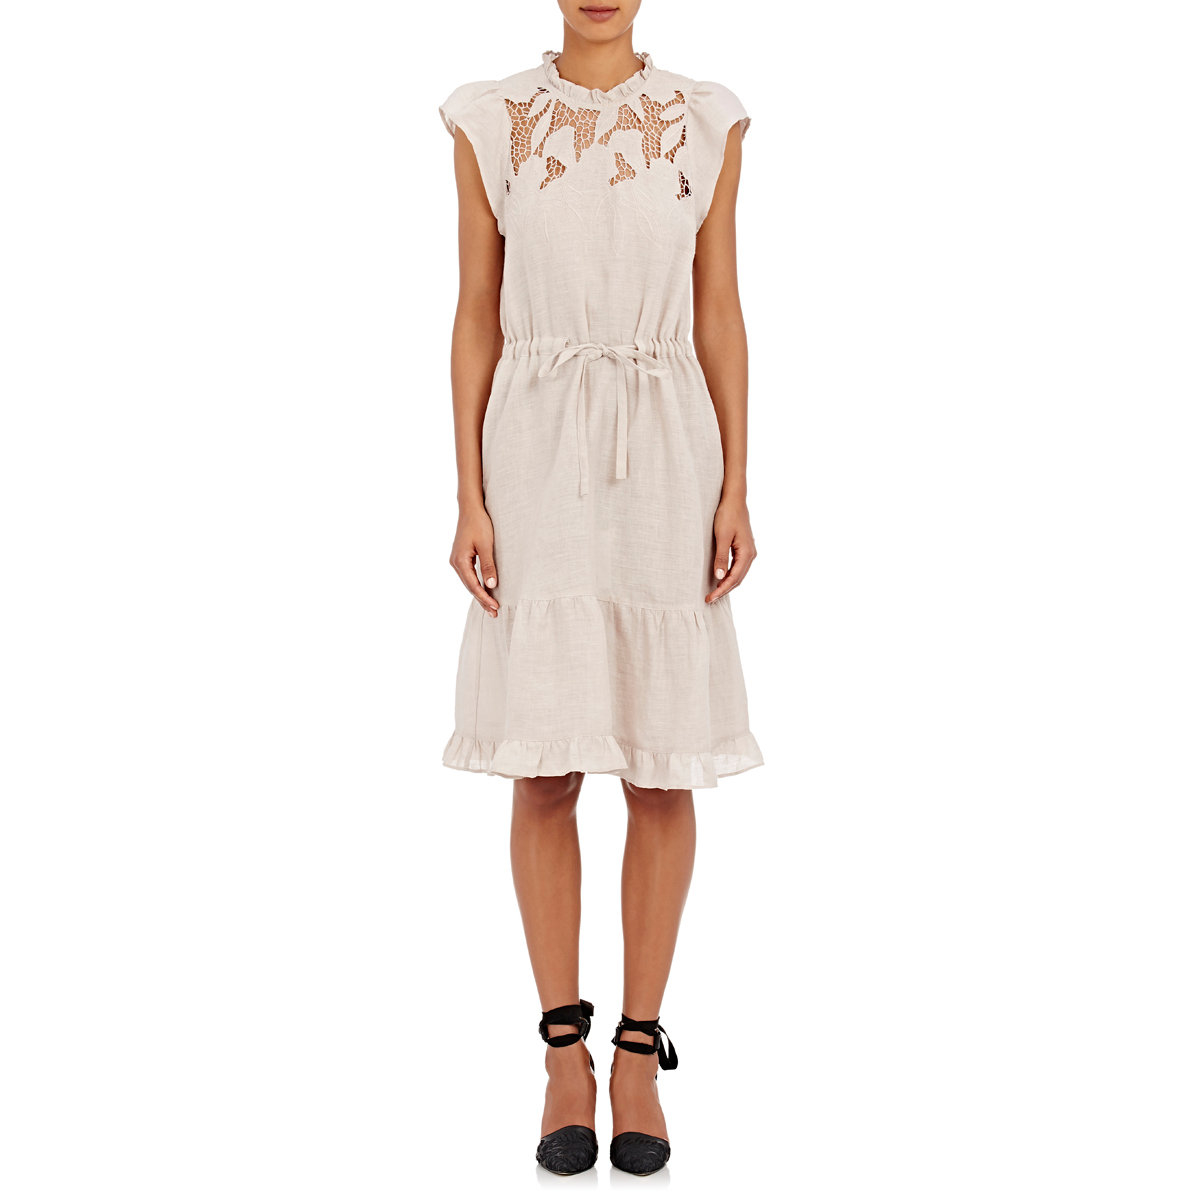 7136469a13 Lyst - Ulla Johnson Amelie Lace-inset Dress in Natural